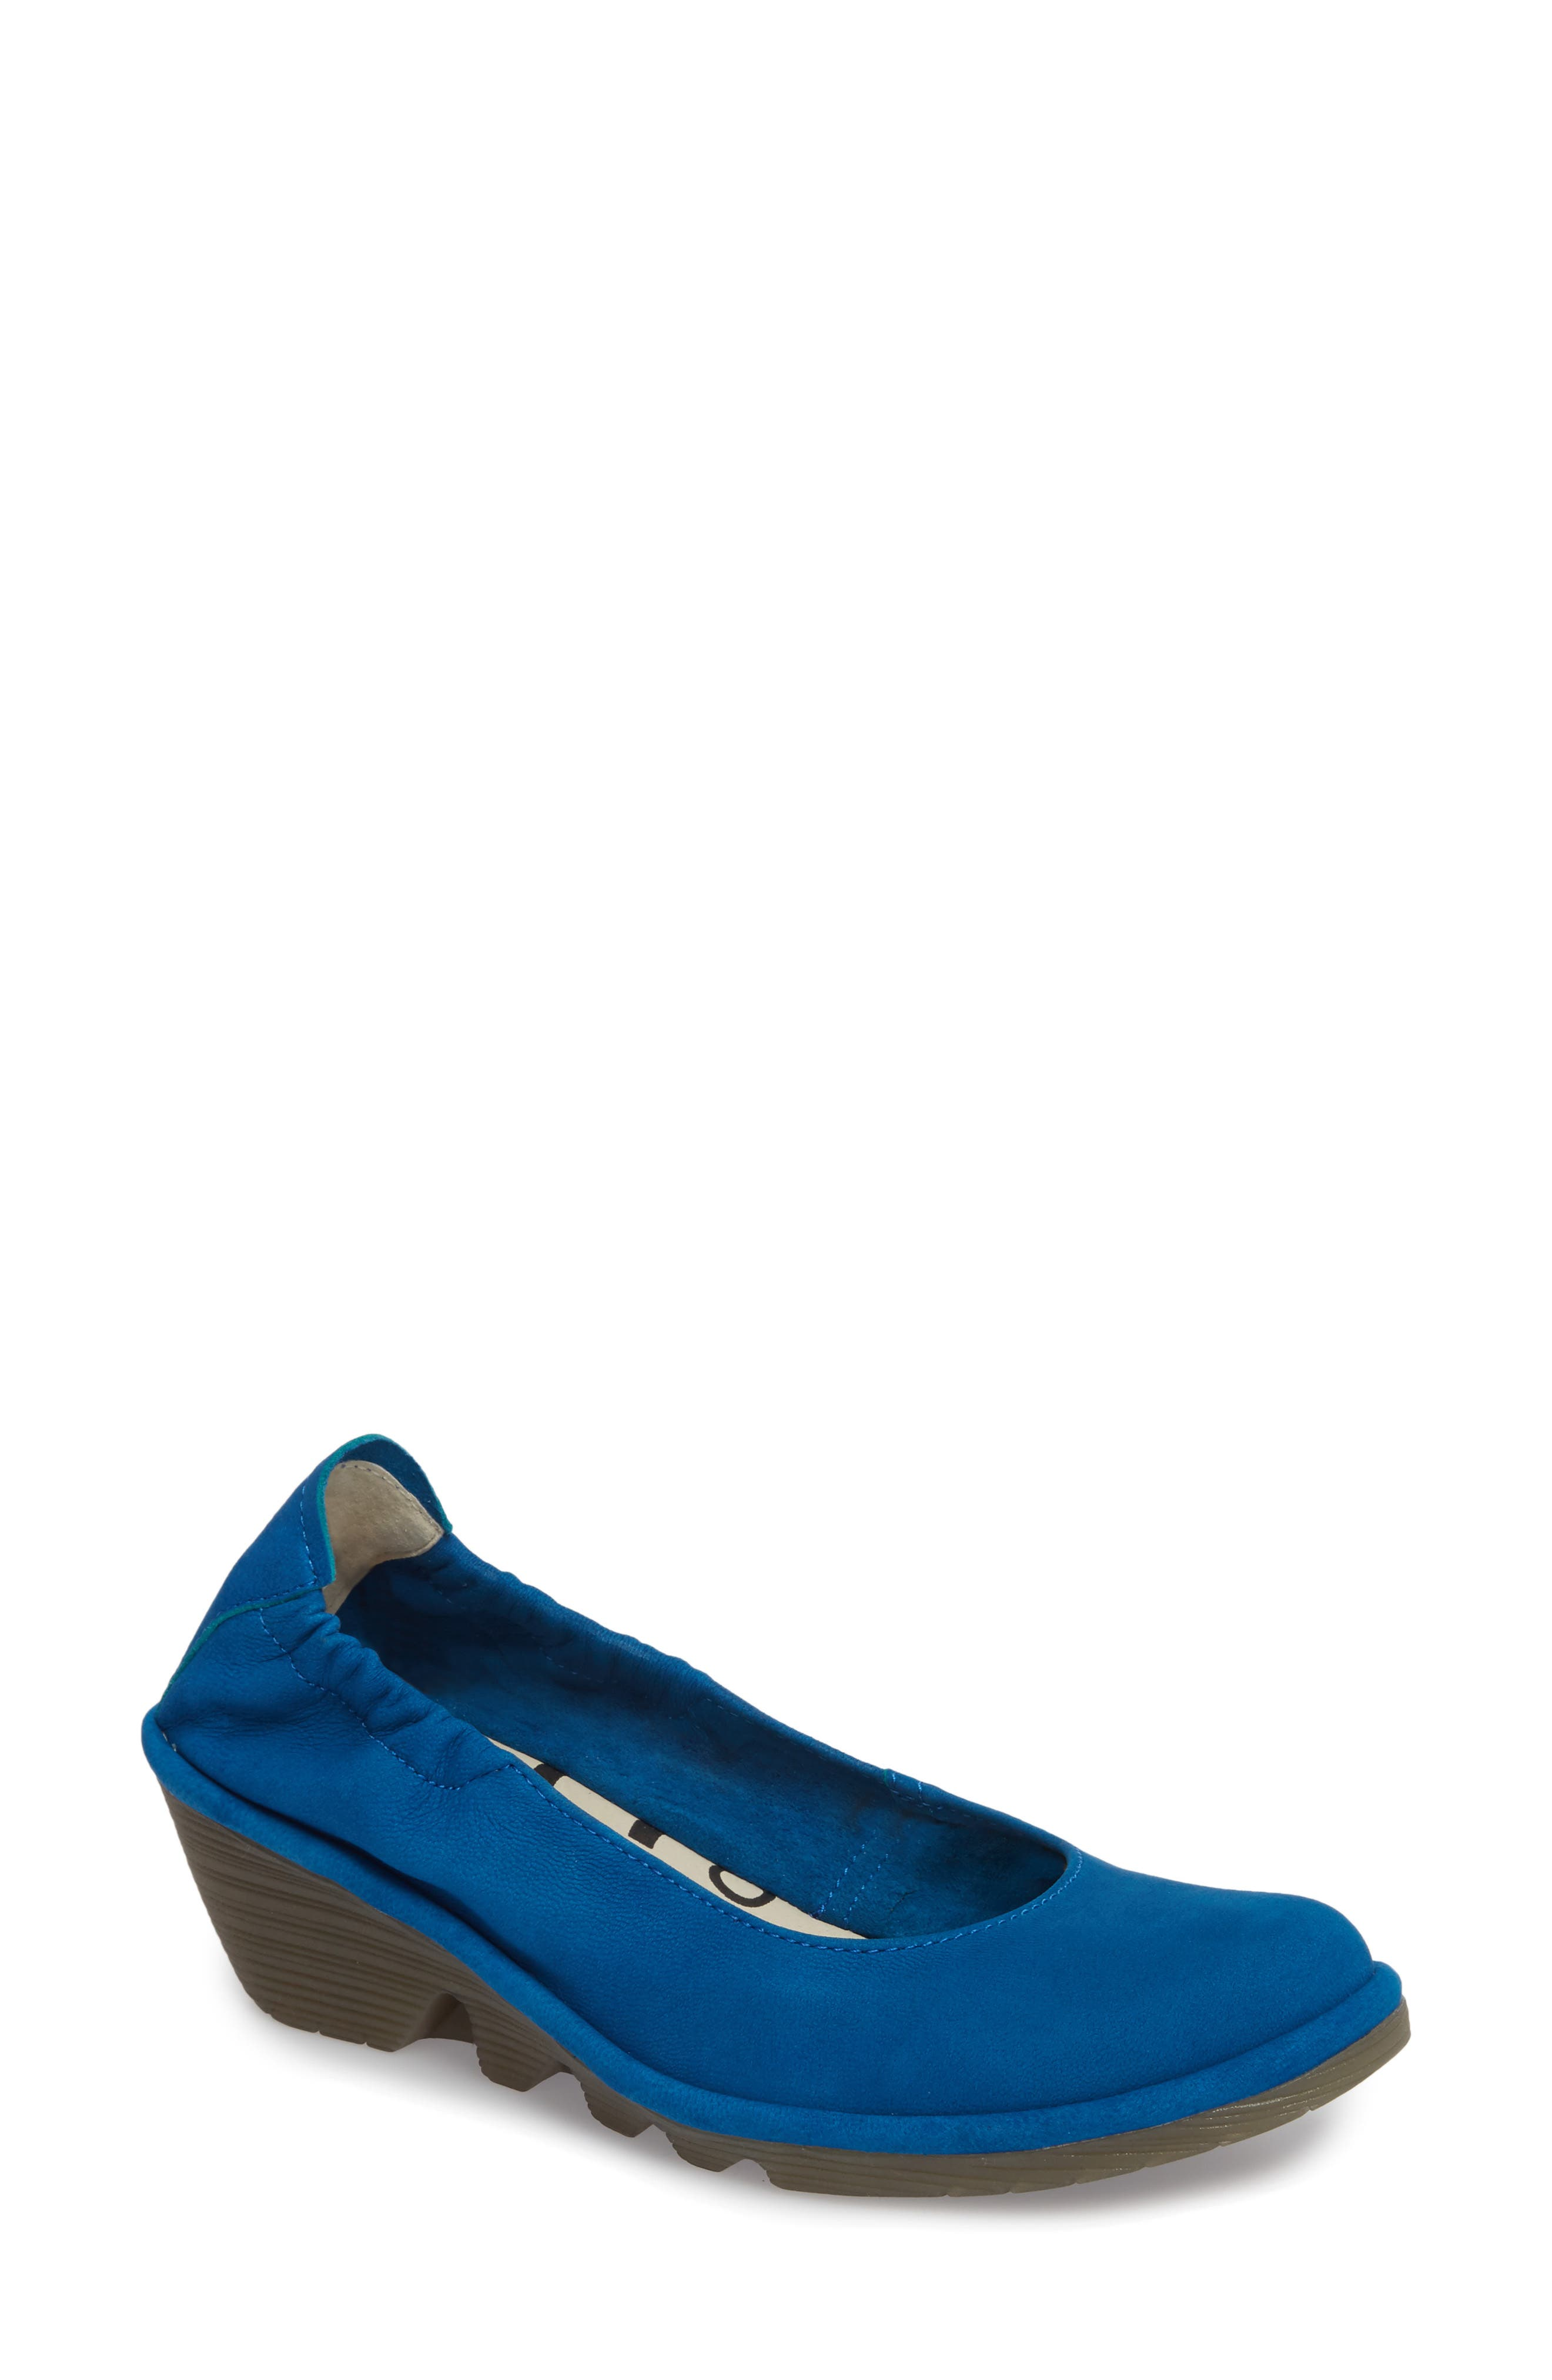 Pled Wedge,                             Main thumbnail 1, color,                             ELECTRIC BLUE CUPIDO LEATHER